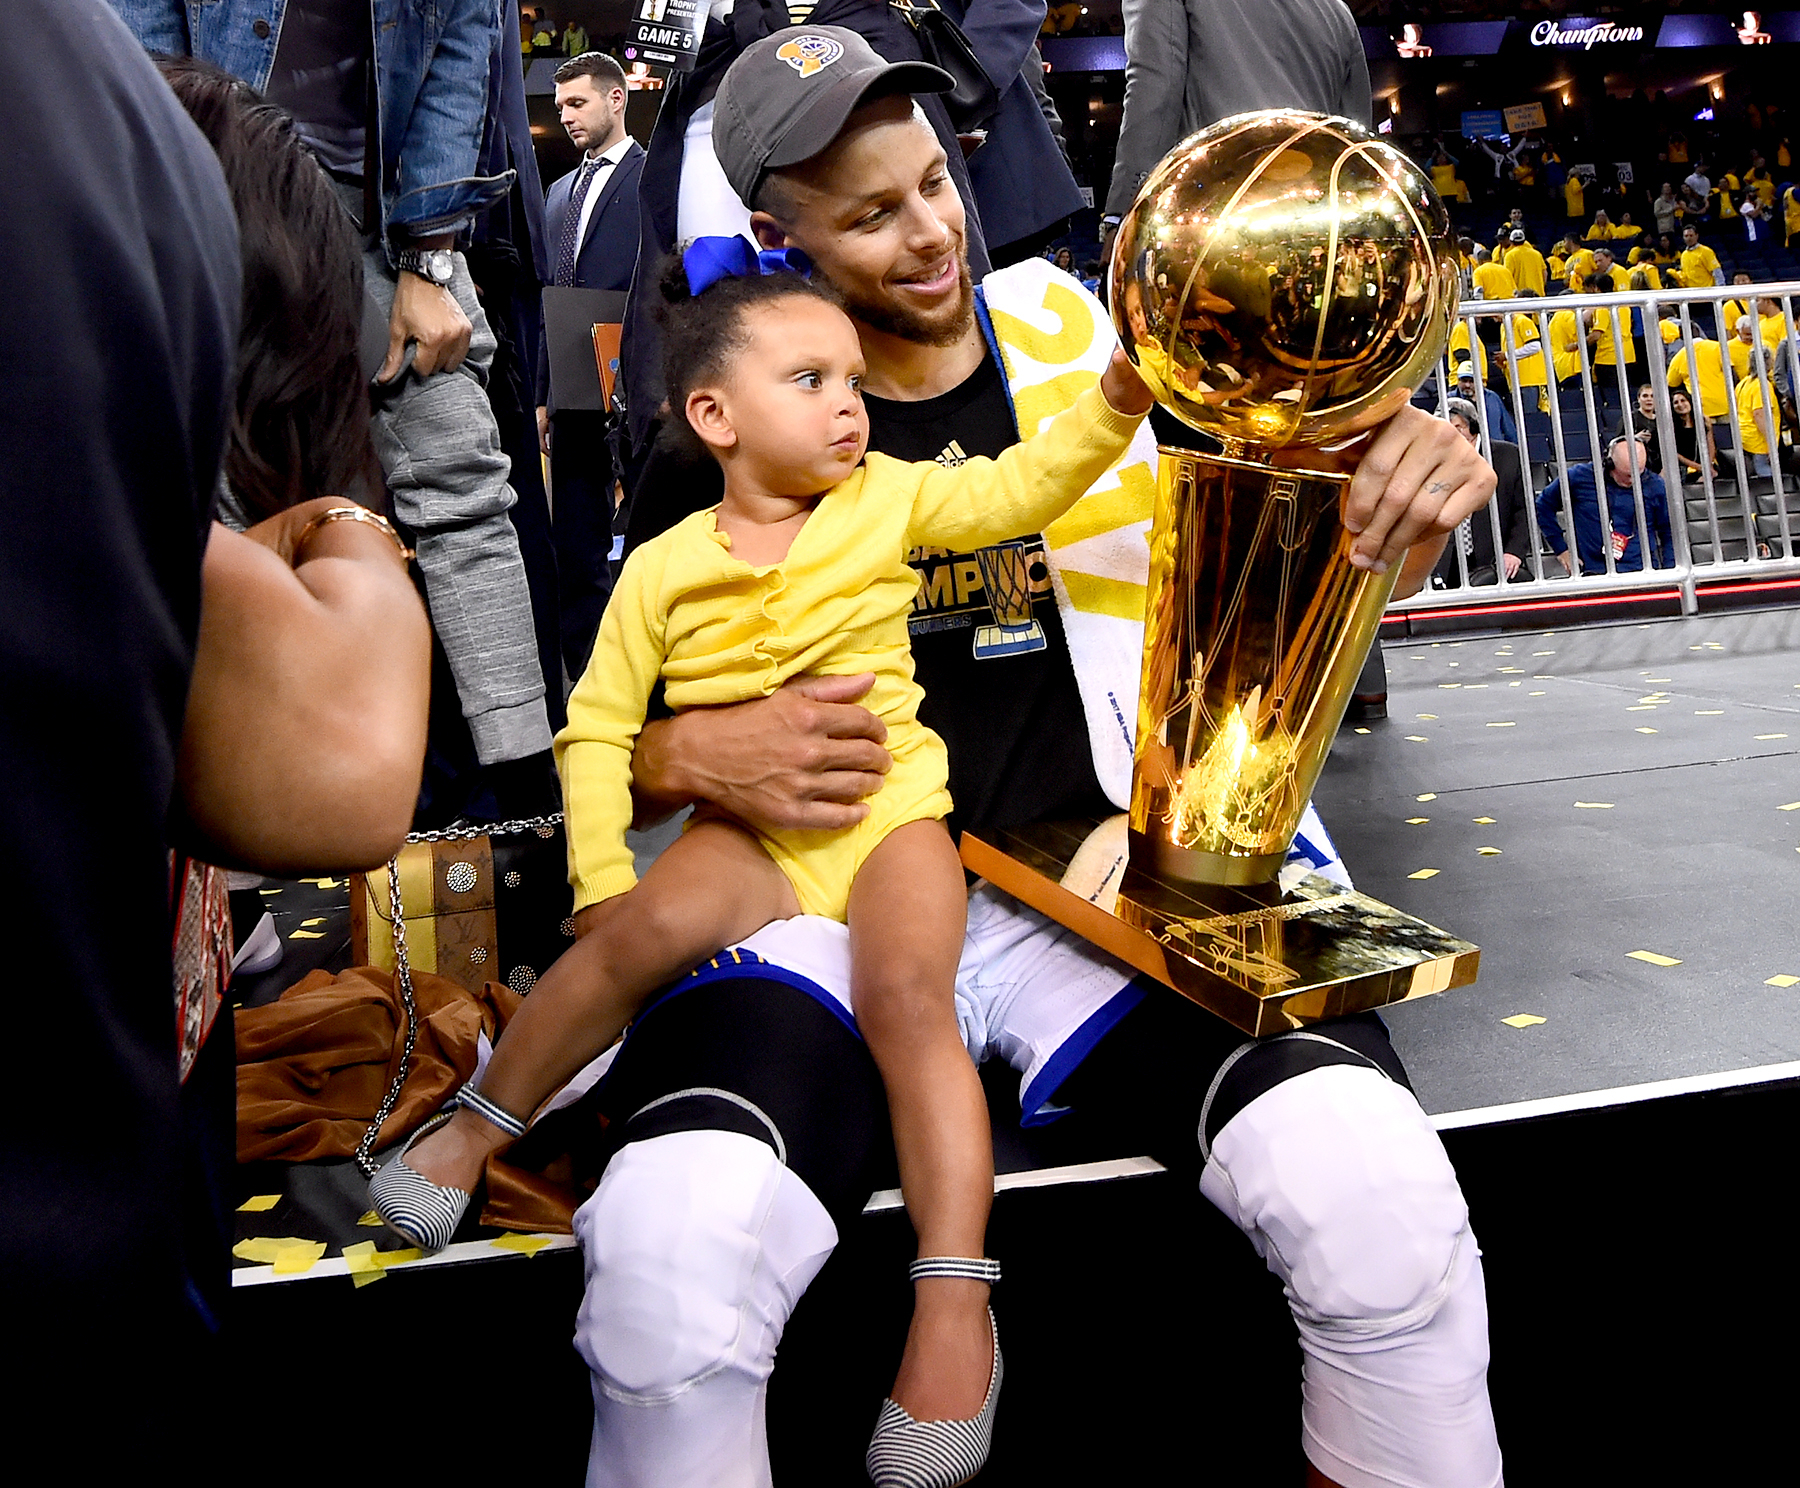 Stephen Curry #30 of the Golden State Warriors celebrates after winning the NBA Championship in Game Five against the Cleveland Cavaliers of the 2017 NBA Finals on June 12, 2017 at Oracle Arena in Oakland, California.